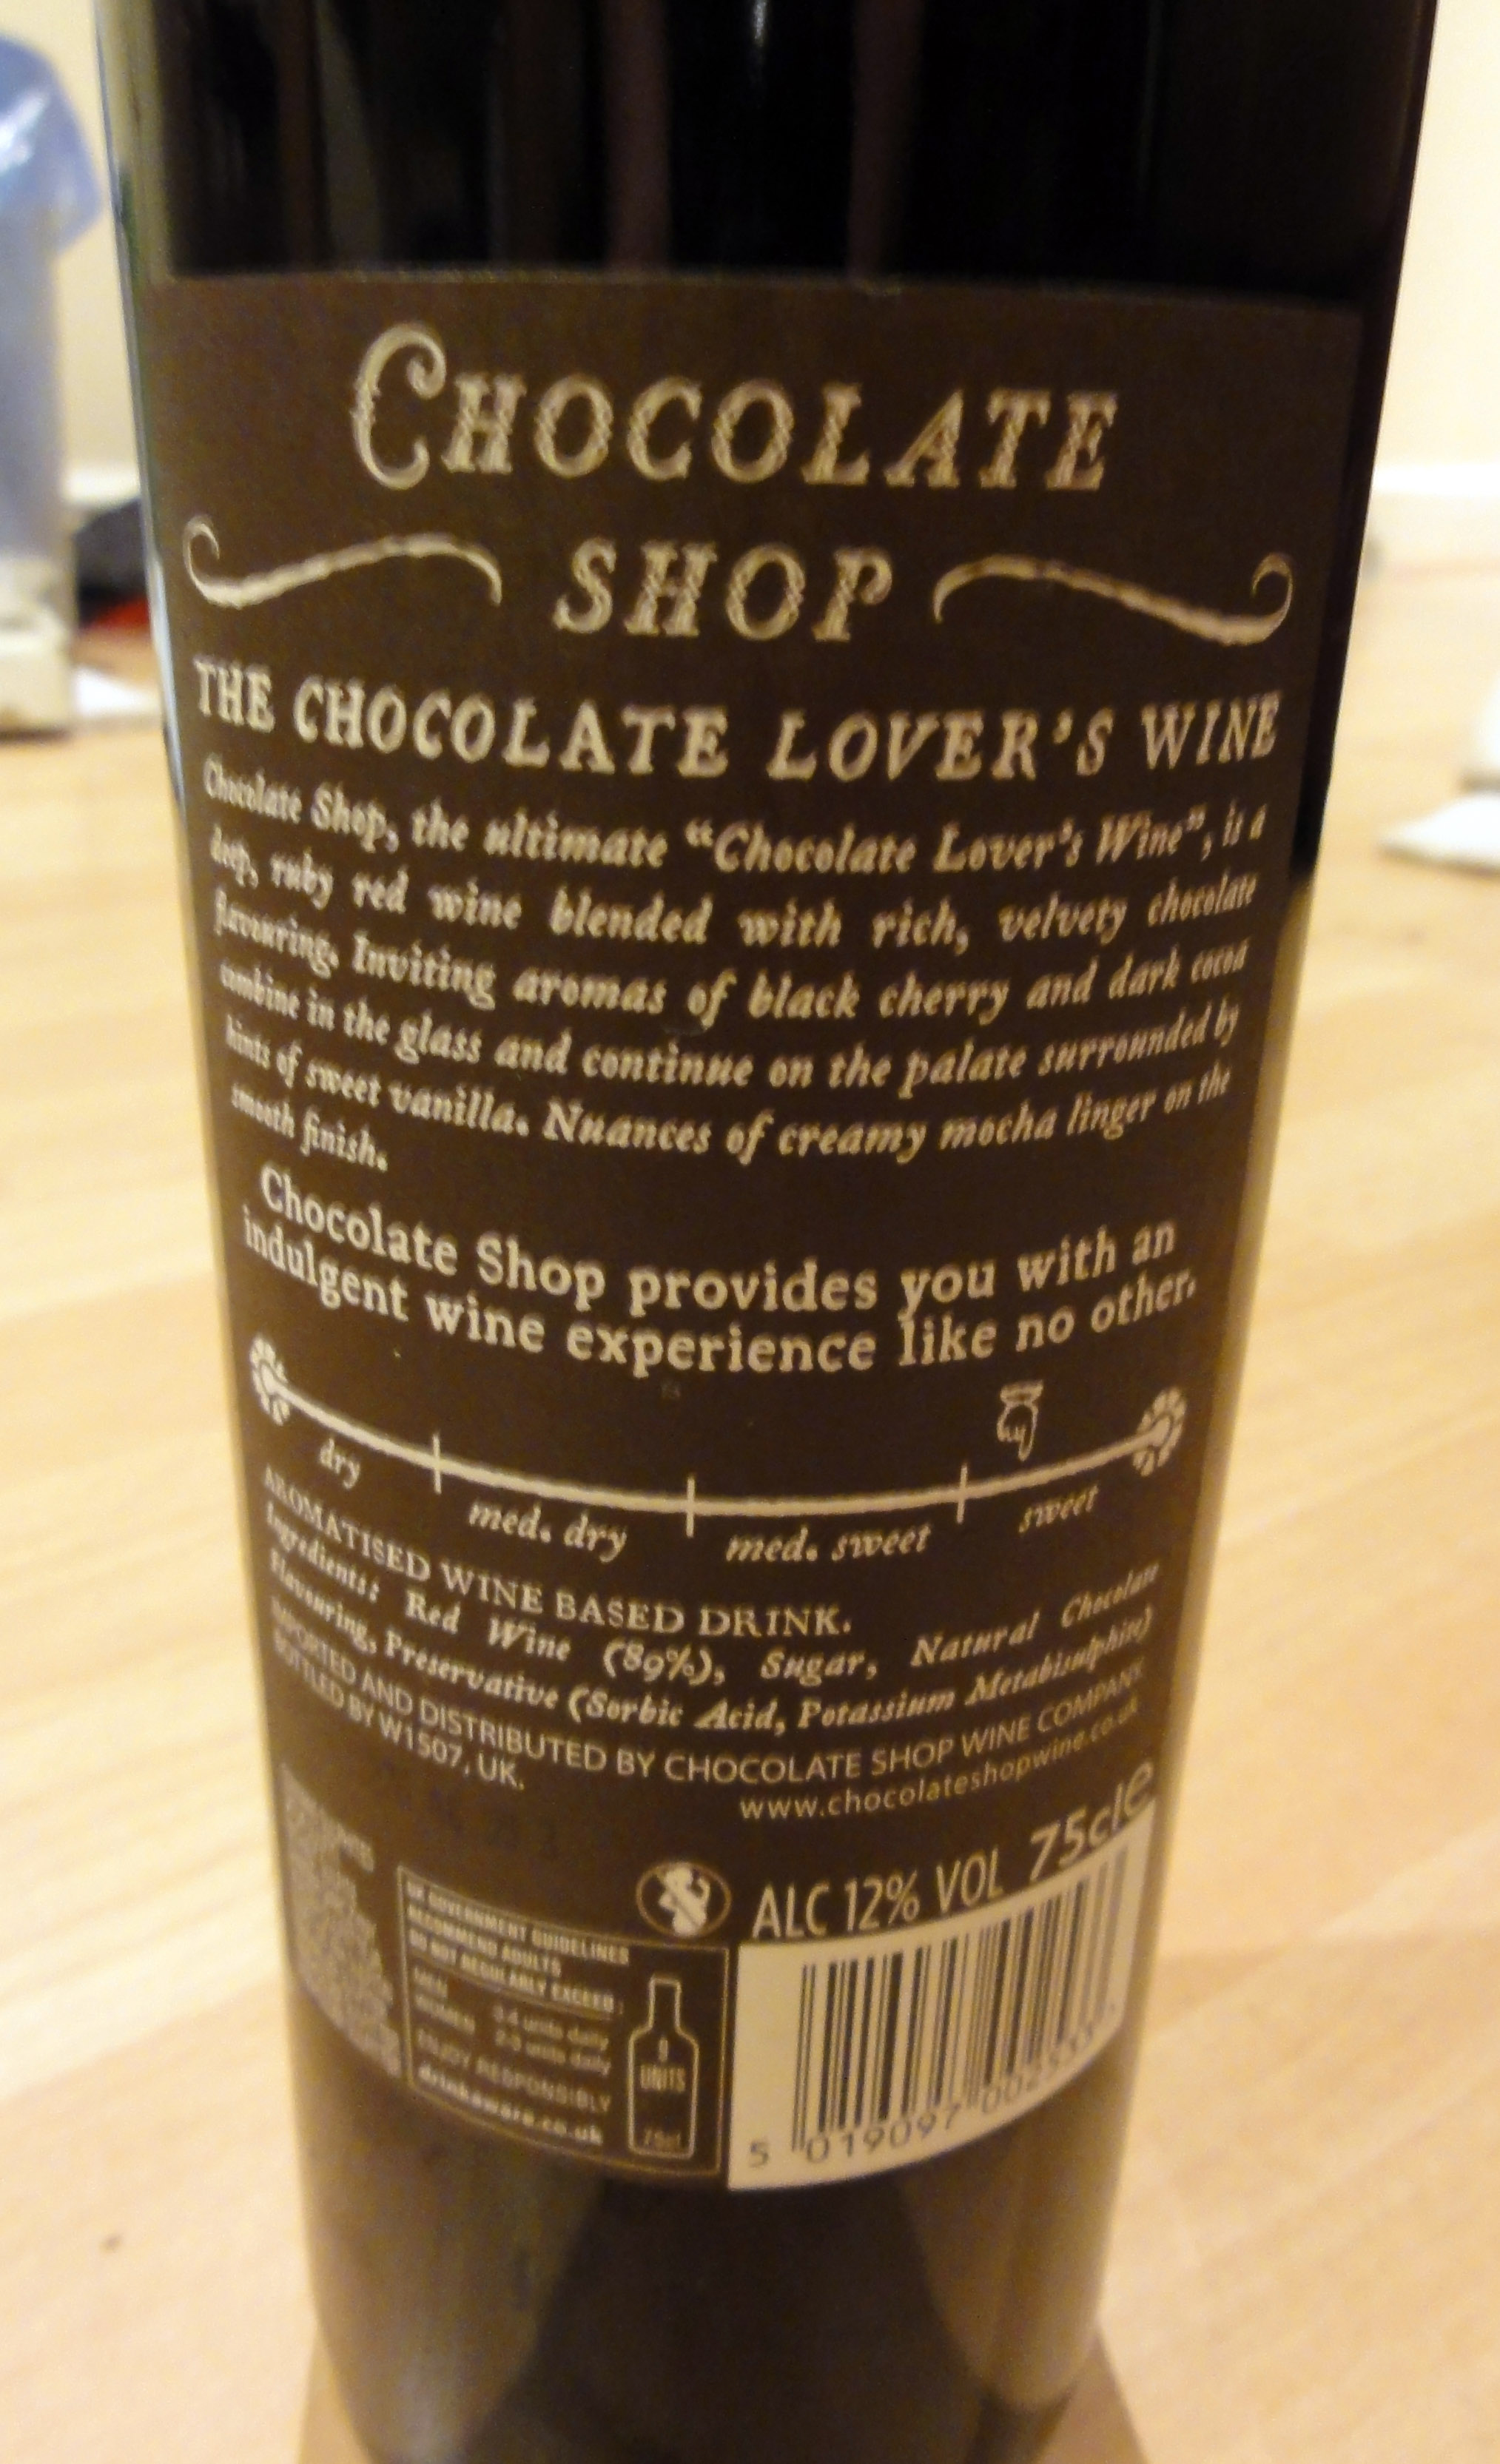 The Chocolate Shop Chocolate Lover's Wine Review